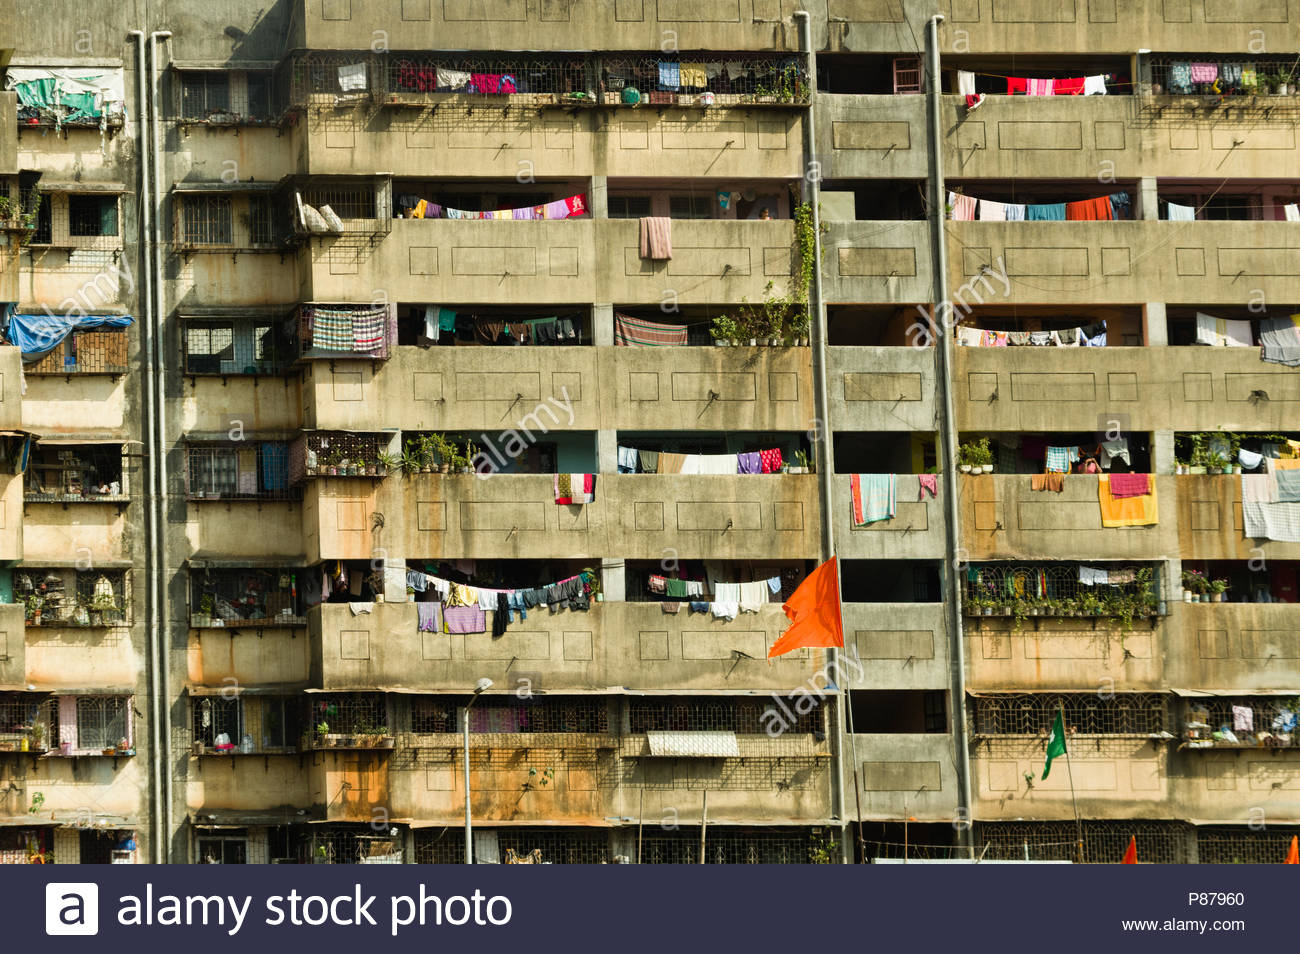 Poor Houses In India Stock Photos Amp Poor Houses In India